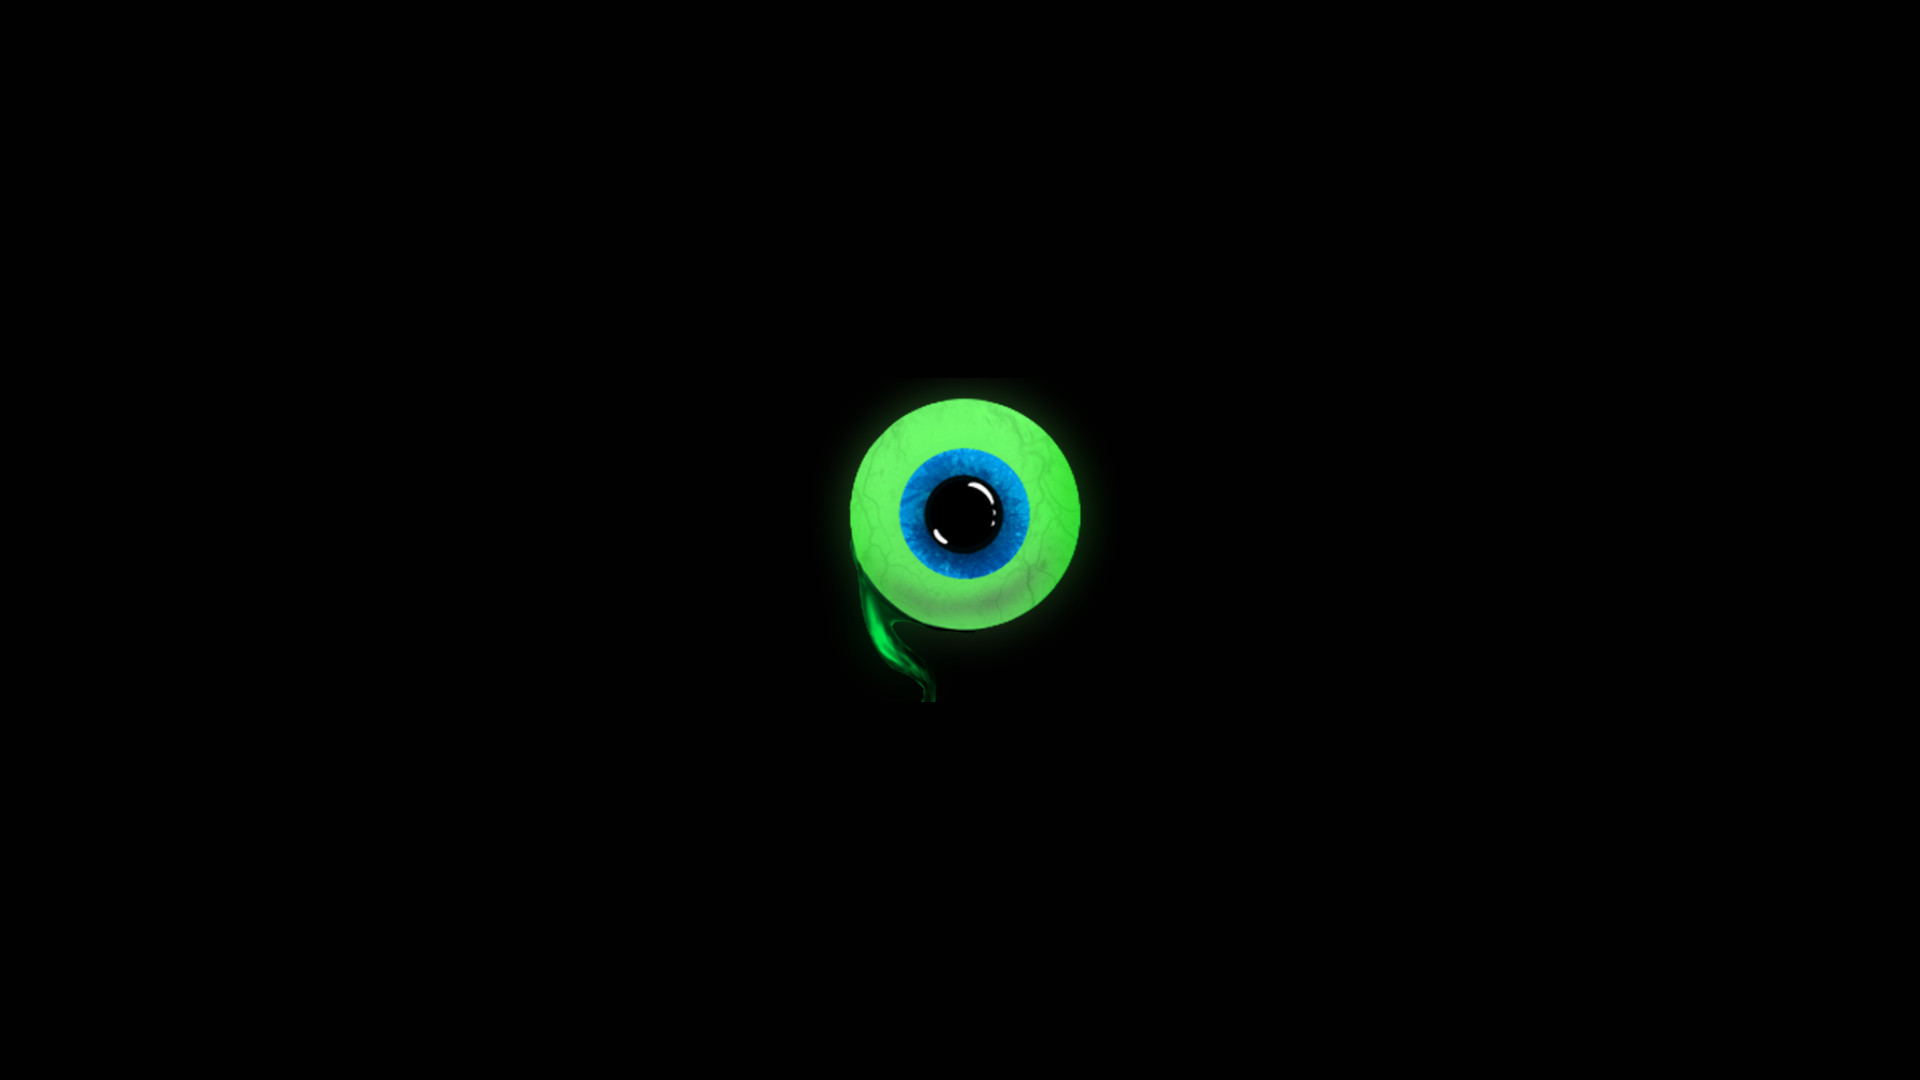 Jacksepticeye Wallpaper 1080P Glow by Donnesmarcus Jacksepticeye Wallpaper  1080P Glow by Donnesmarcus